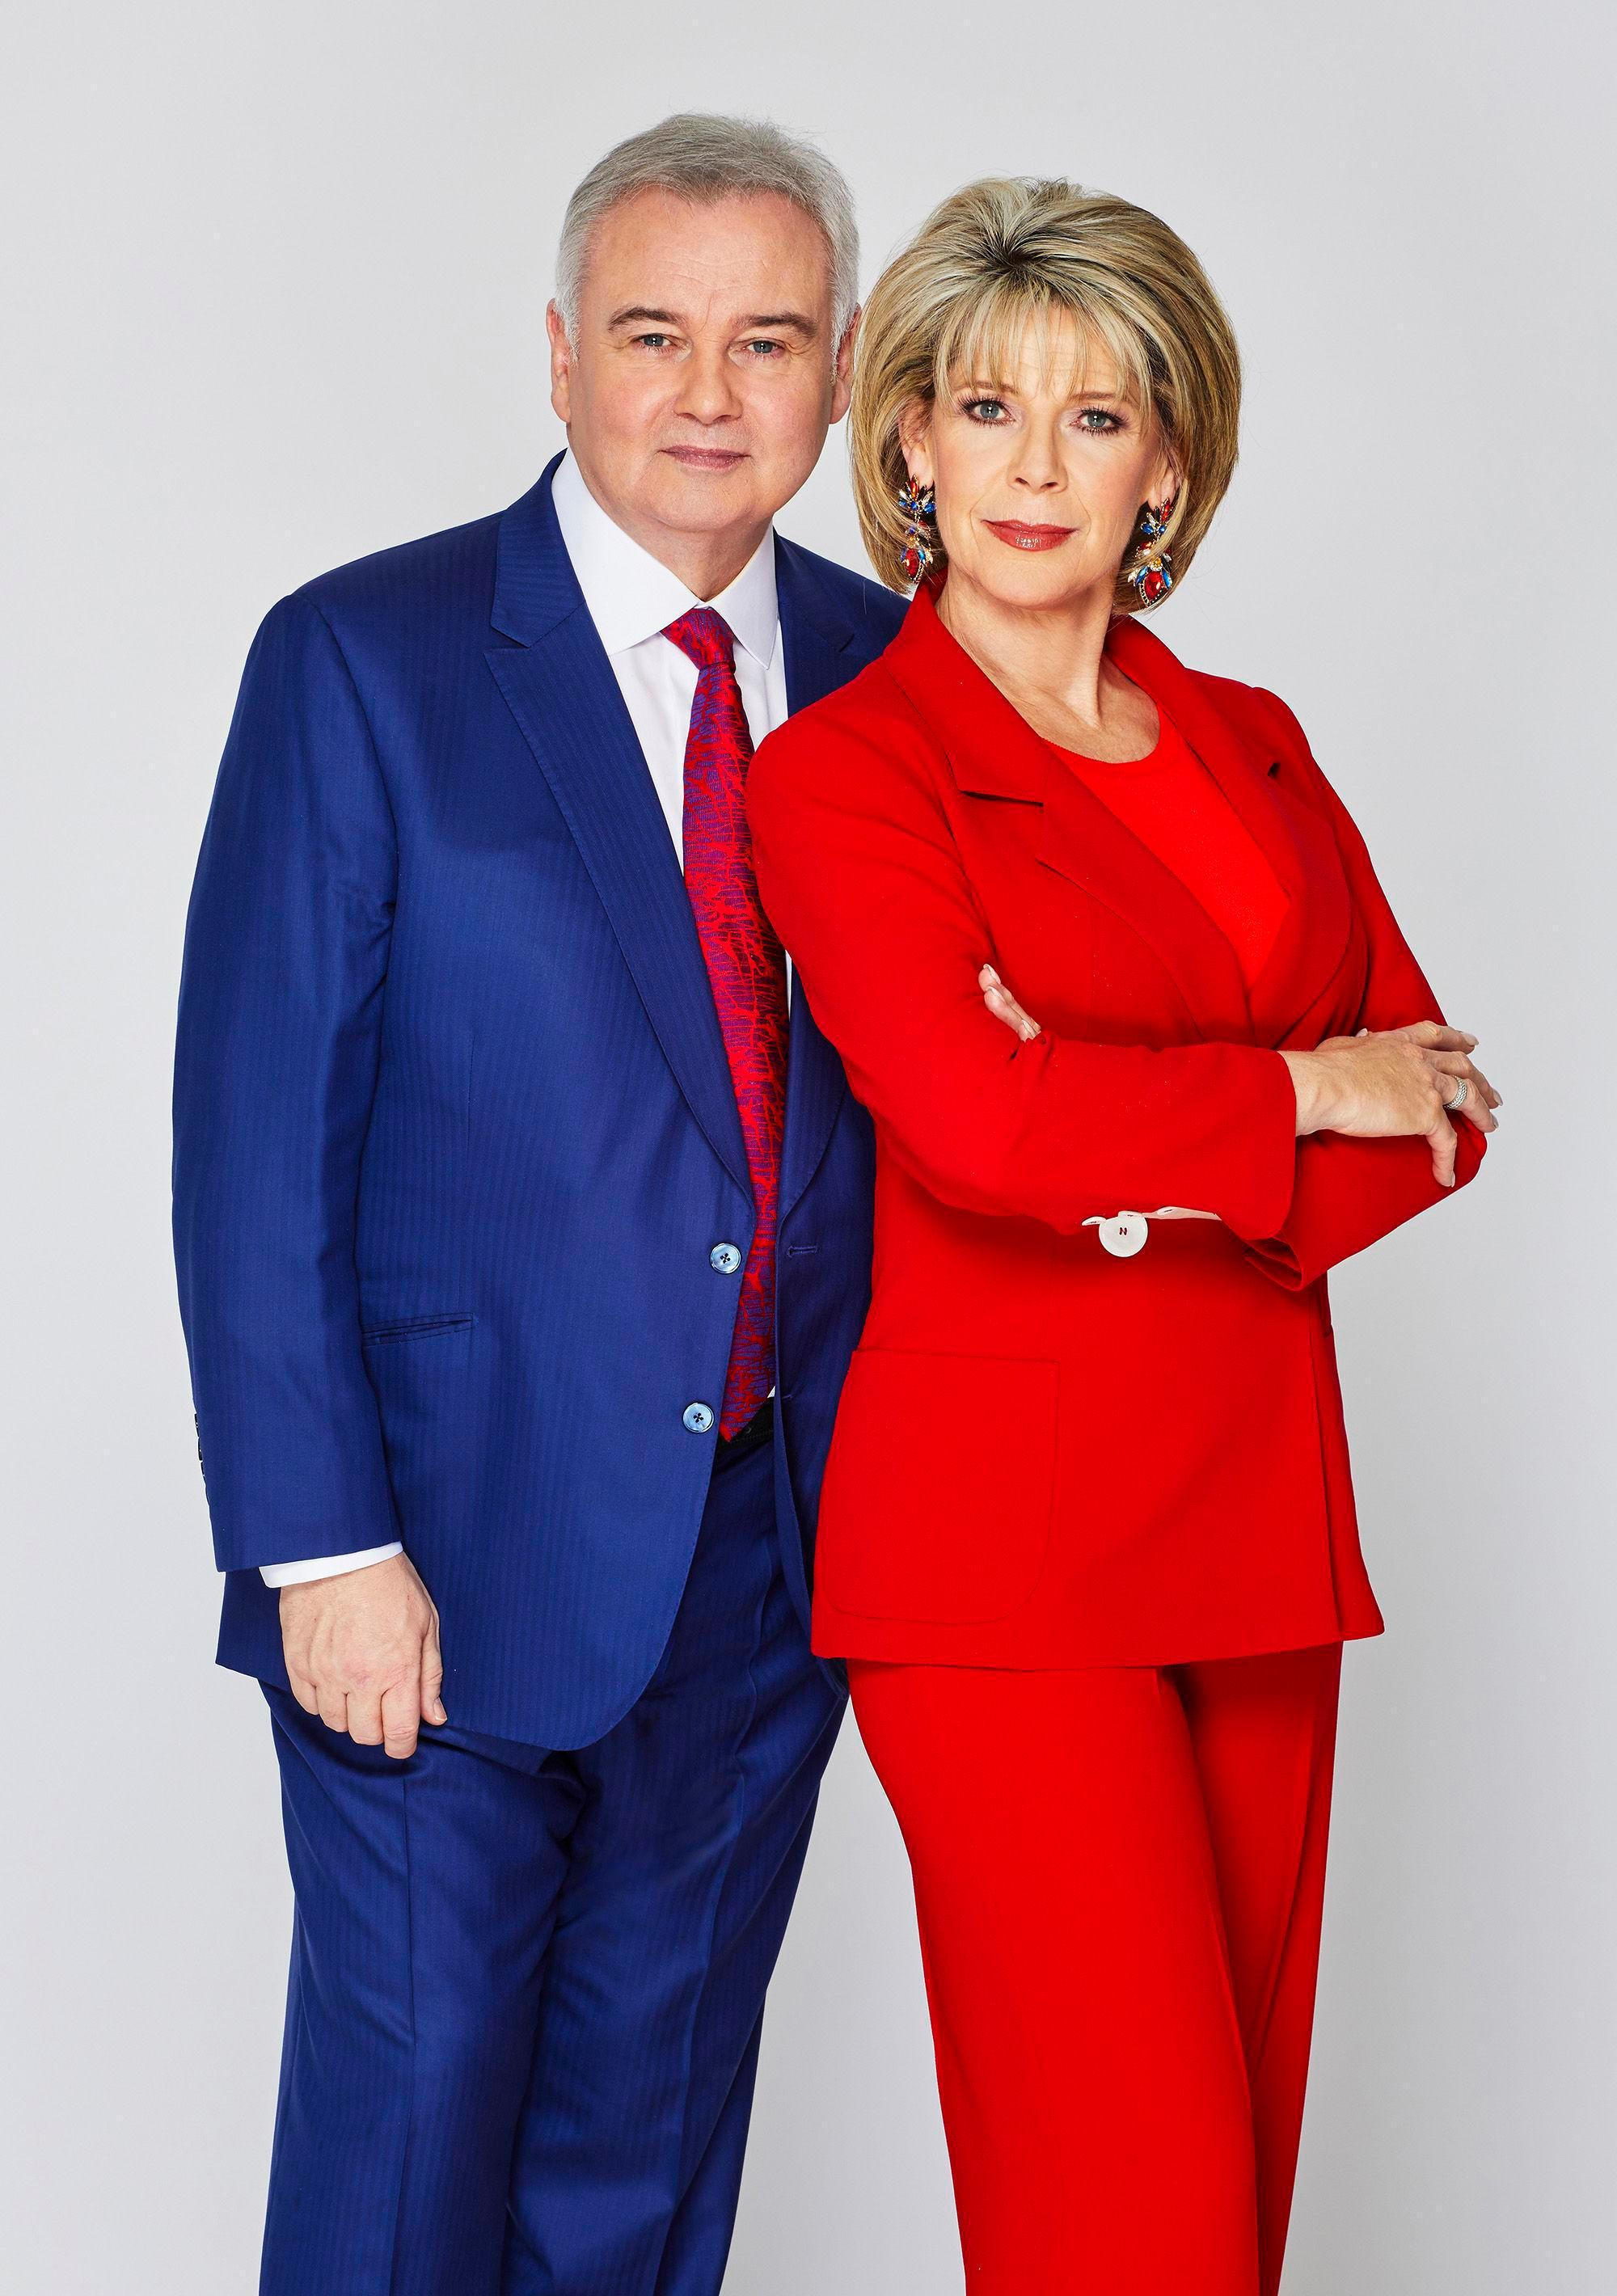 Ruth and Eamonn's new show, Do The Right Thing, proved a huge hit with viewers forecast